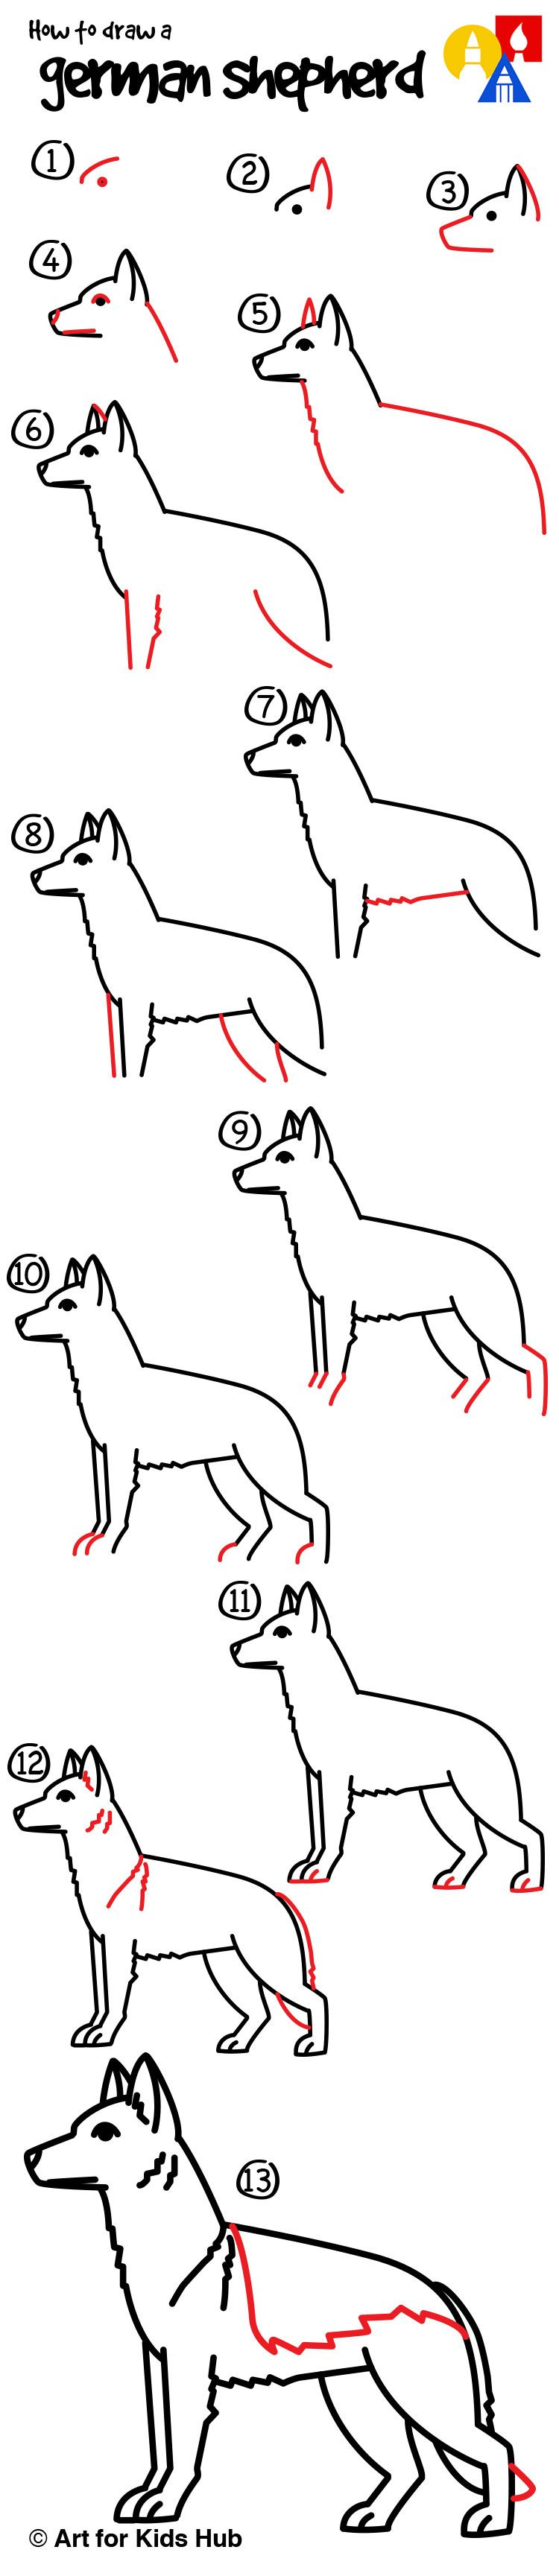 How to draw a german shepherd art for kids hub pinterest learn how to draw a german shepherd with easy step by steps thecheapjerseys Images